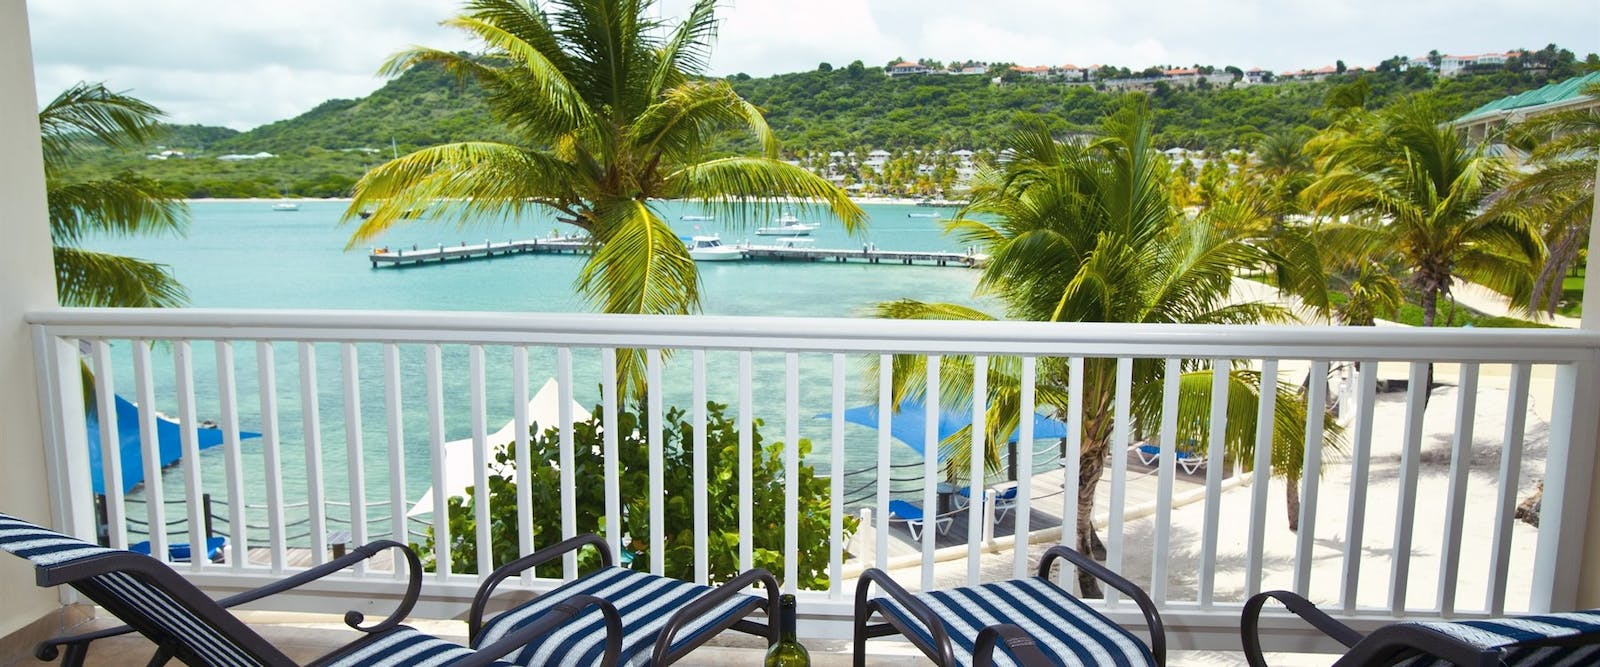 Exterior View of the Main Swimming Pool at St James's Club & Villas, Antigua